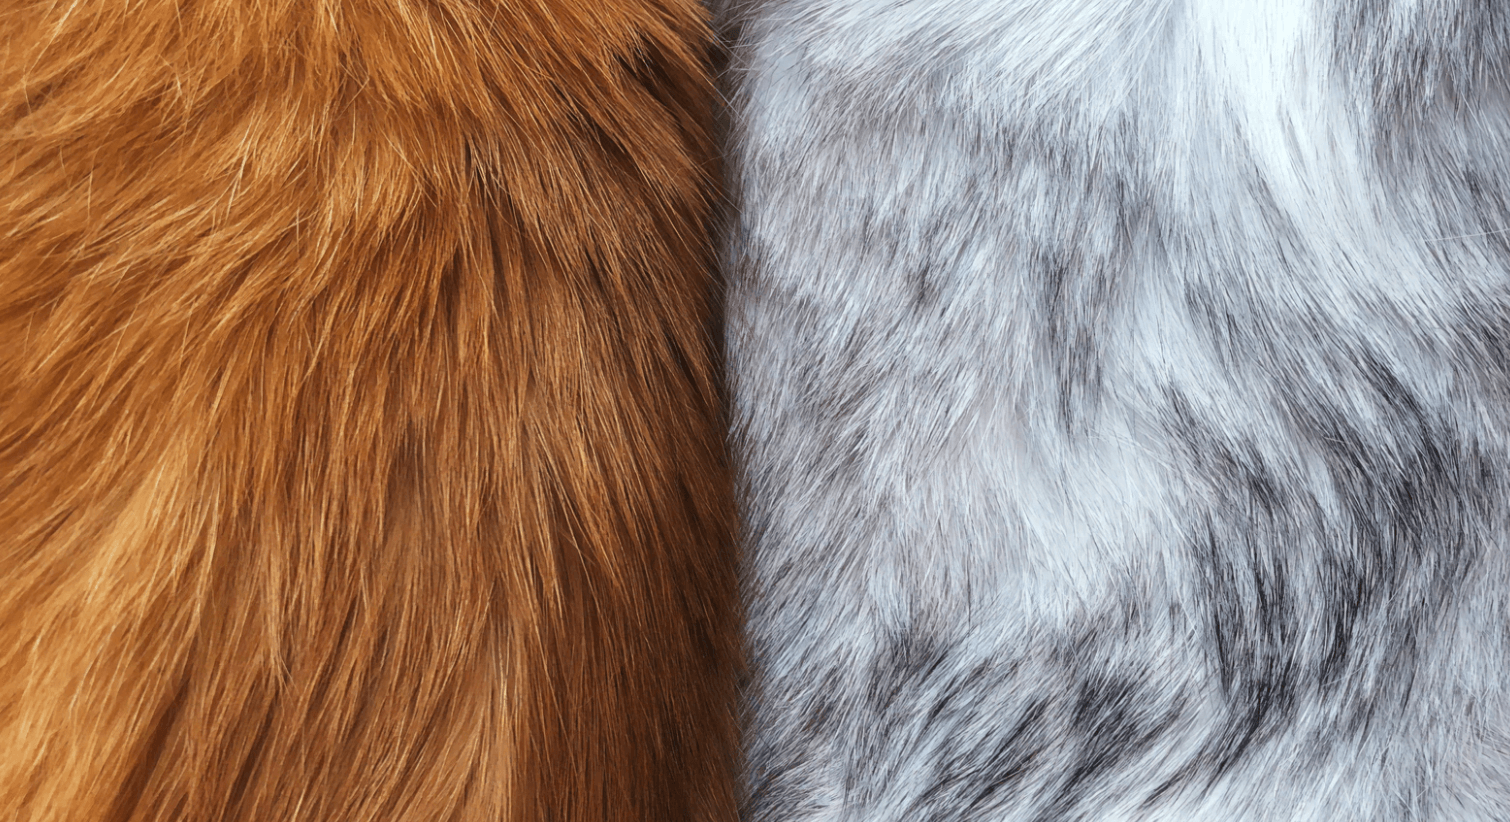 Fur Photoshop Brushes